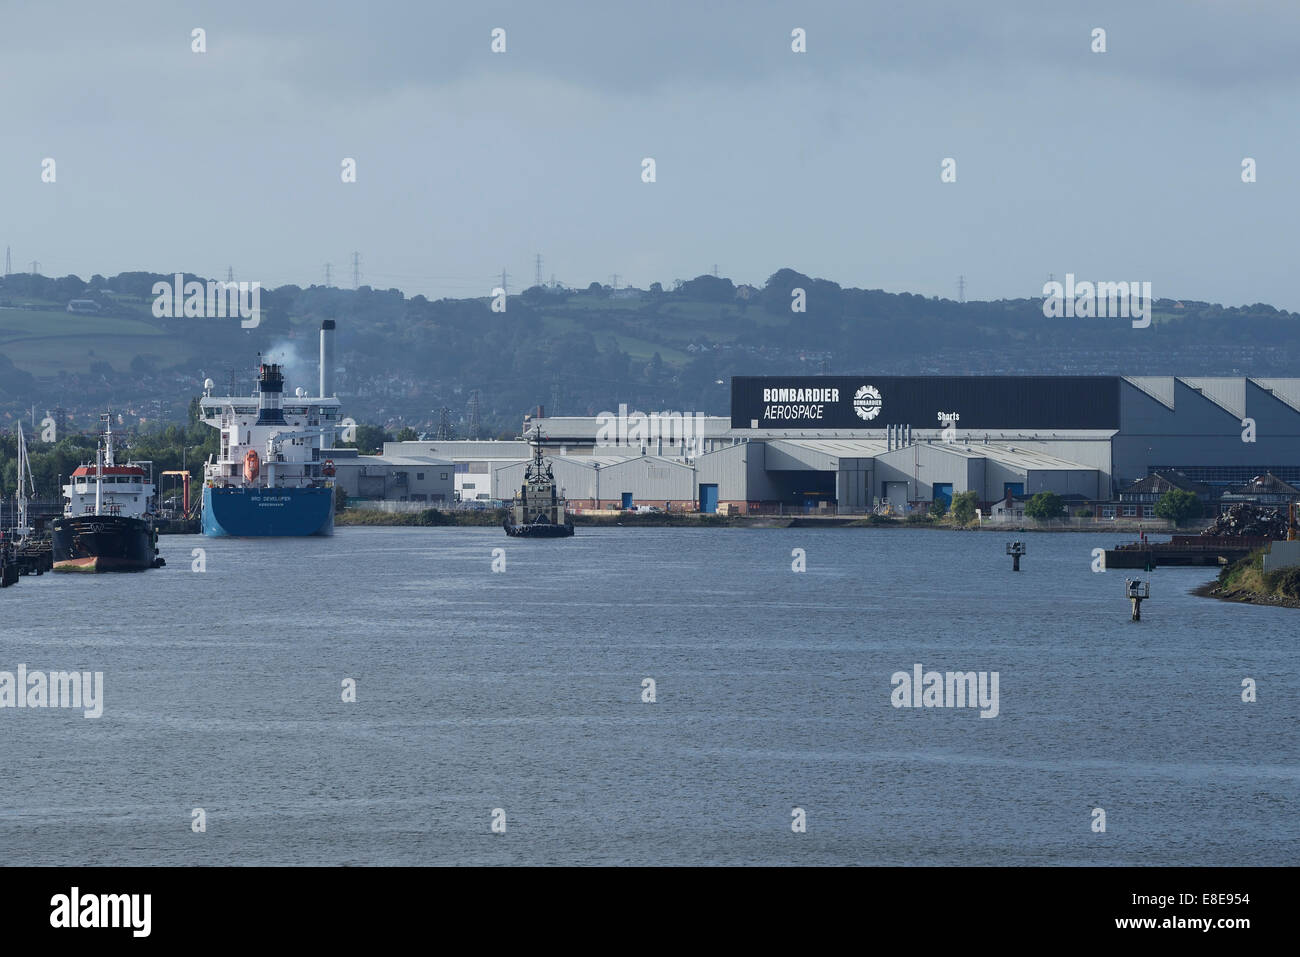 The Bombardier Aerospace factory at Belfast Harbour Northern Ireland UK - Stock Image